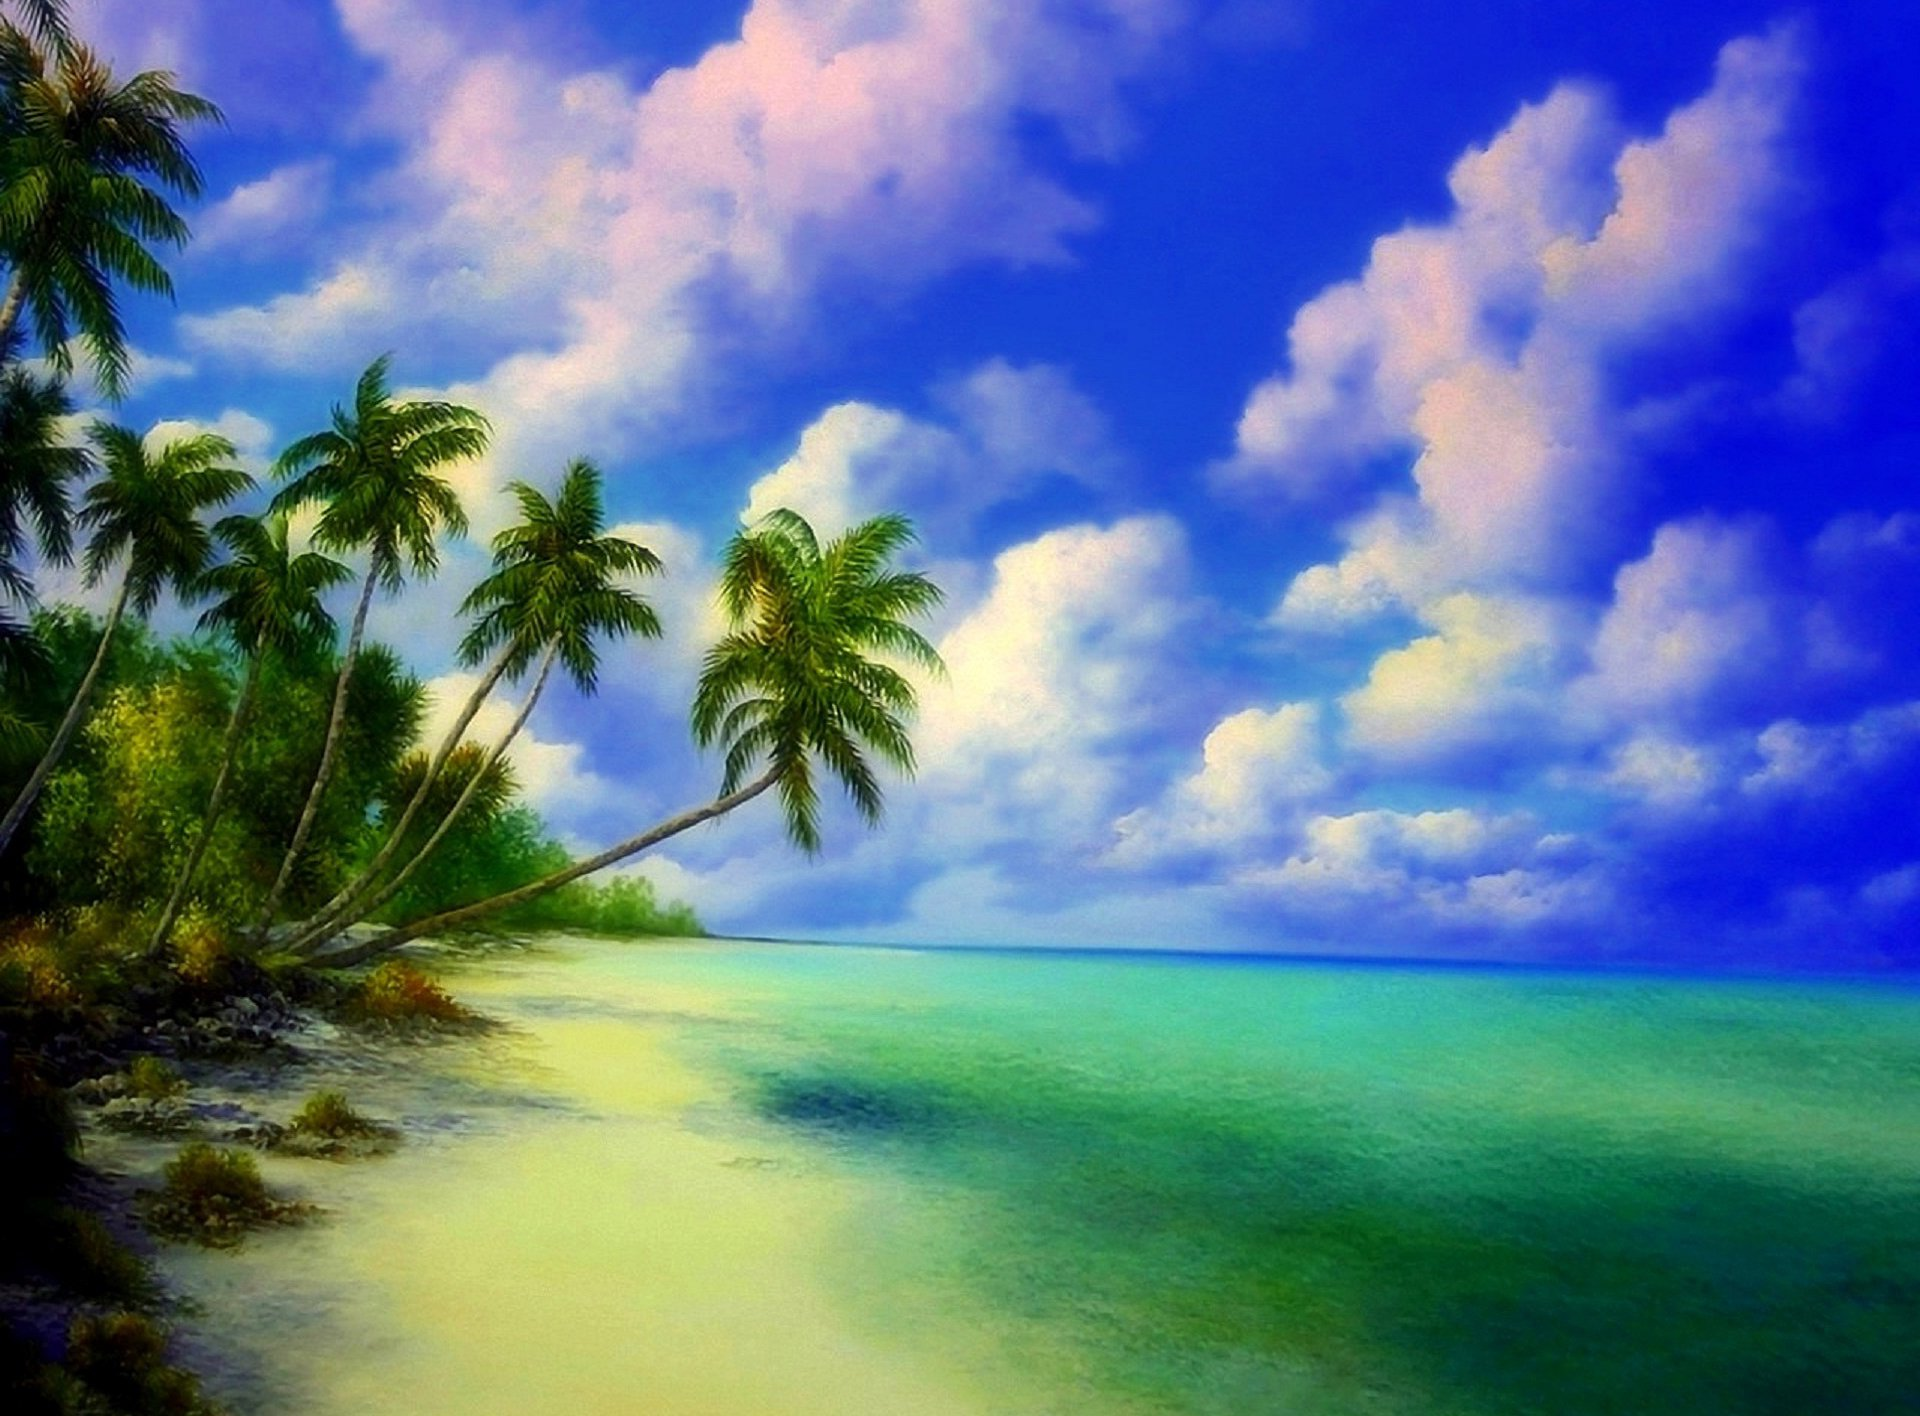 Palm Tree Iphone Wallpaper Painting Tropical Beach Hd Wallpaper Background Image